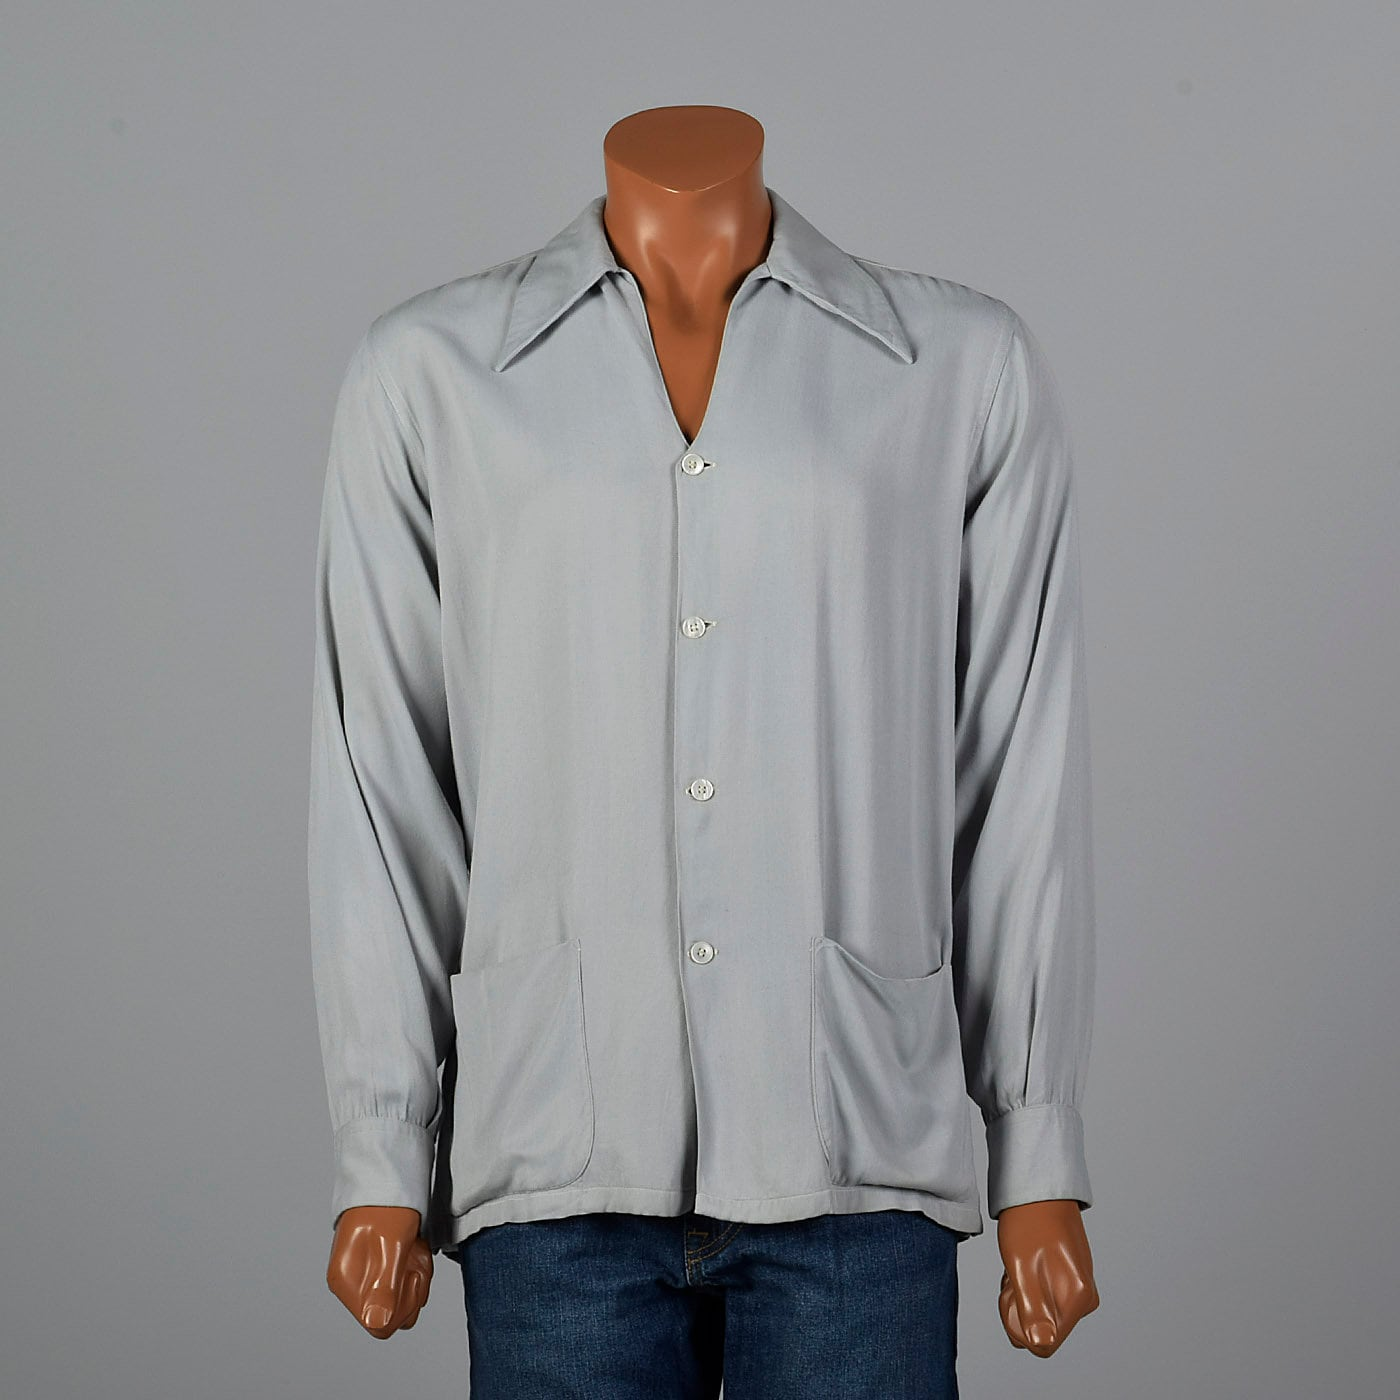 1940s Men's Shirts, Sweaters, Vests Medium 1950S Mens Shirt Gabardine Jacket Van Heusen Rockabilly Gray $0.00 AT vintagedancer.com